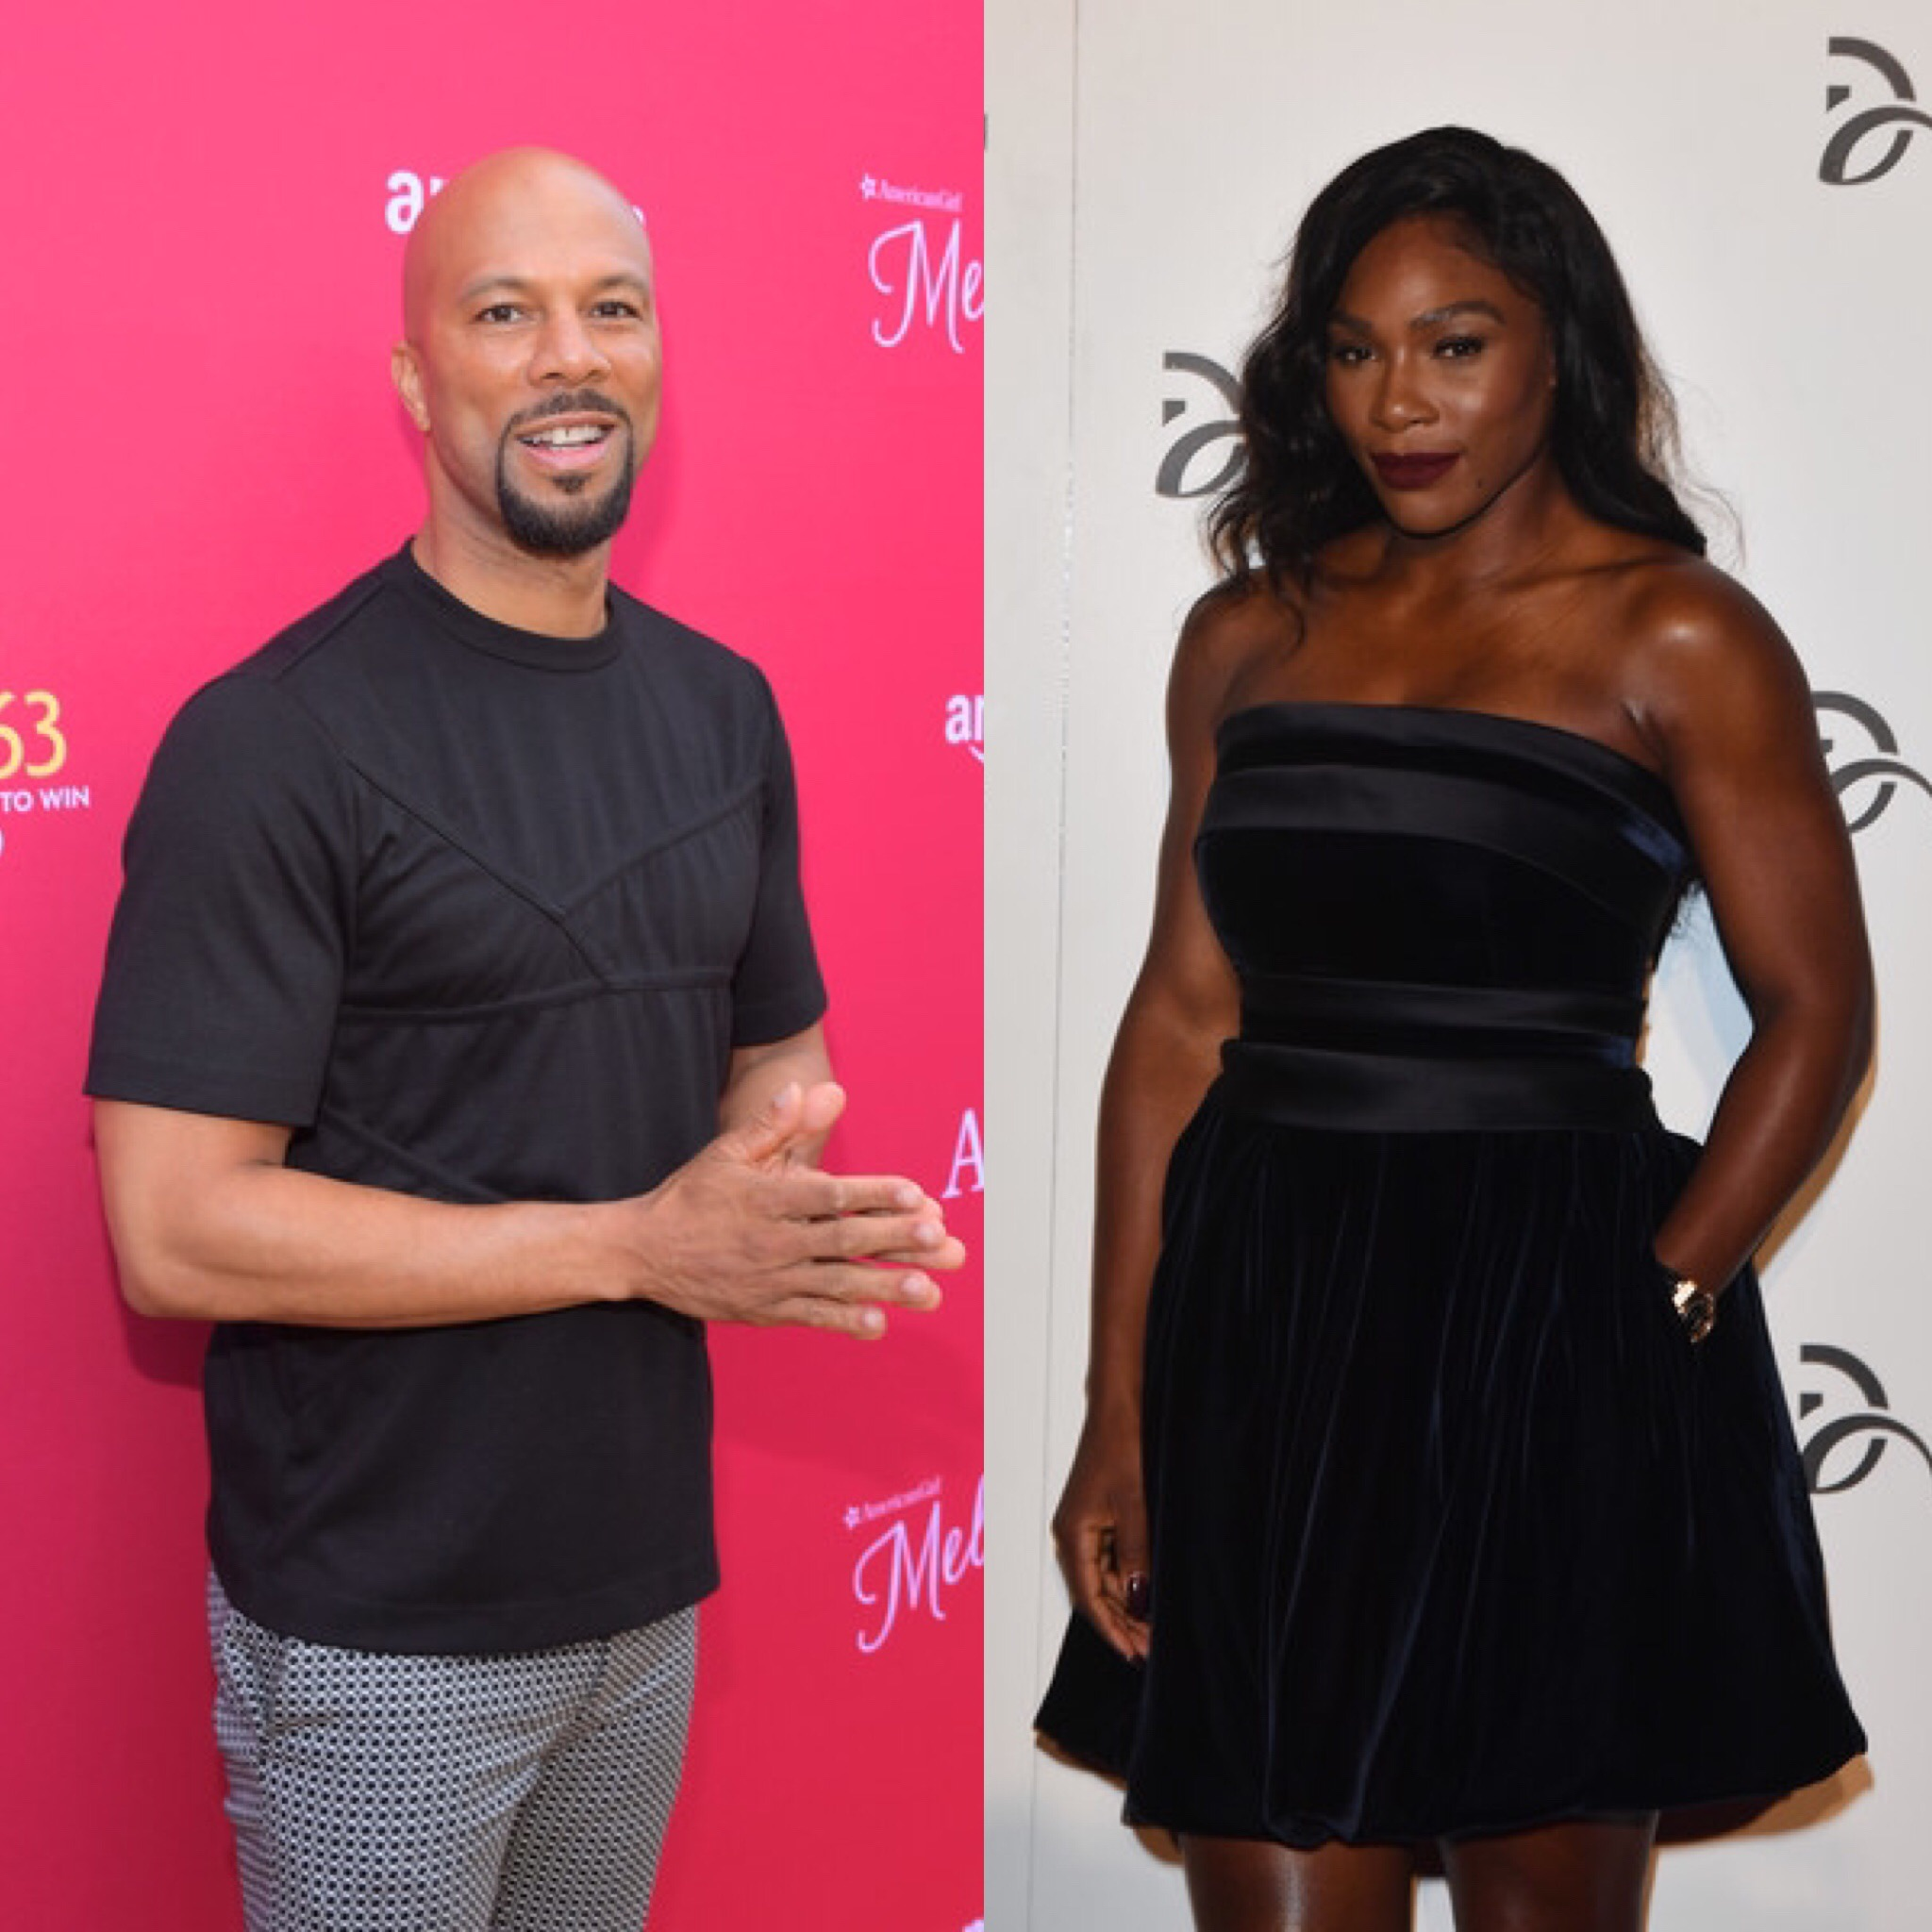 serena williams dating common Who is serena williams dating it looks like serena is back on the dating scene months after breaking up with rapper/actor common, i'm hearing that serena and.